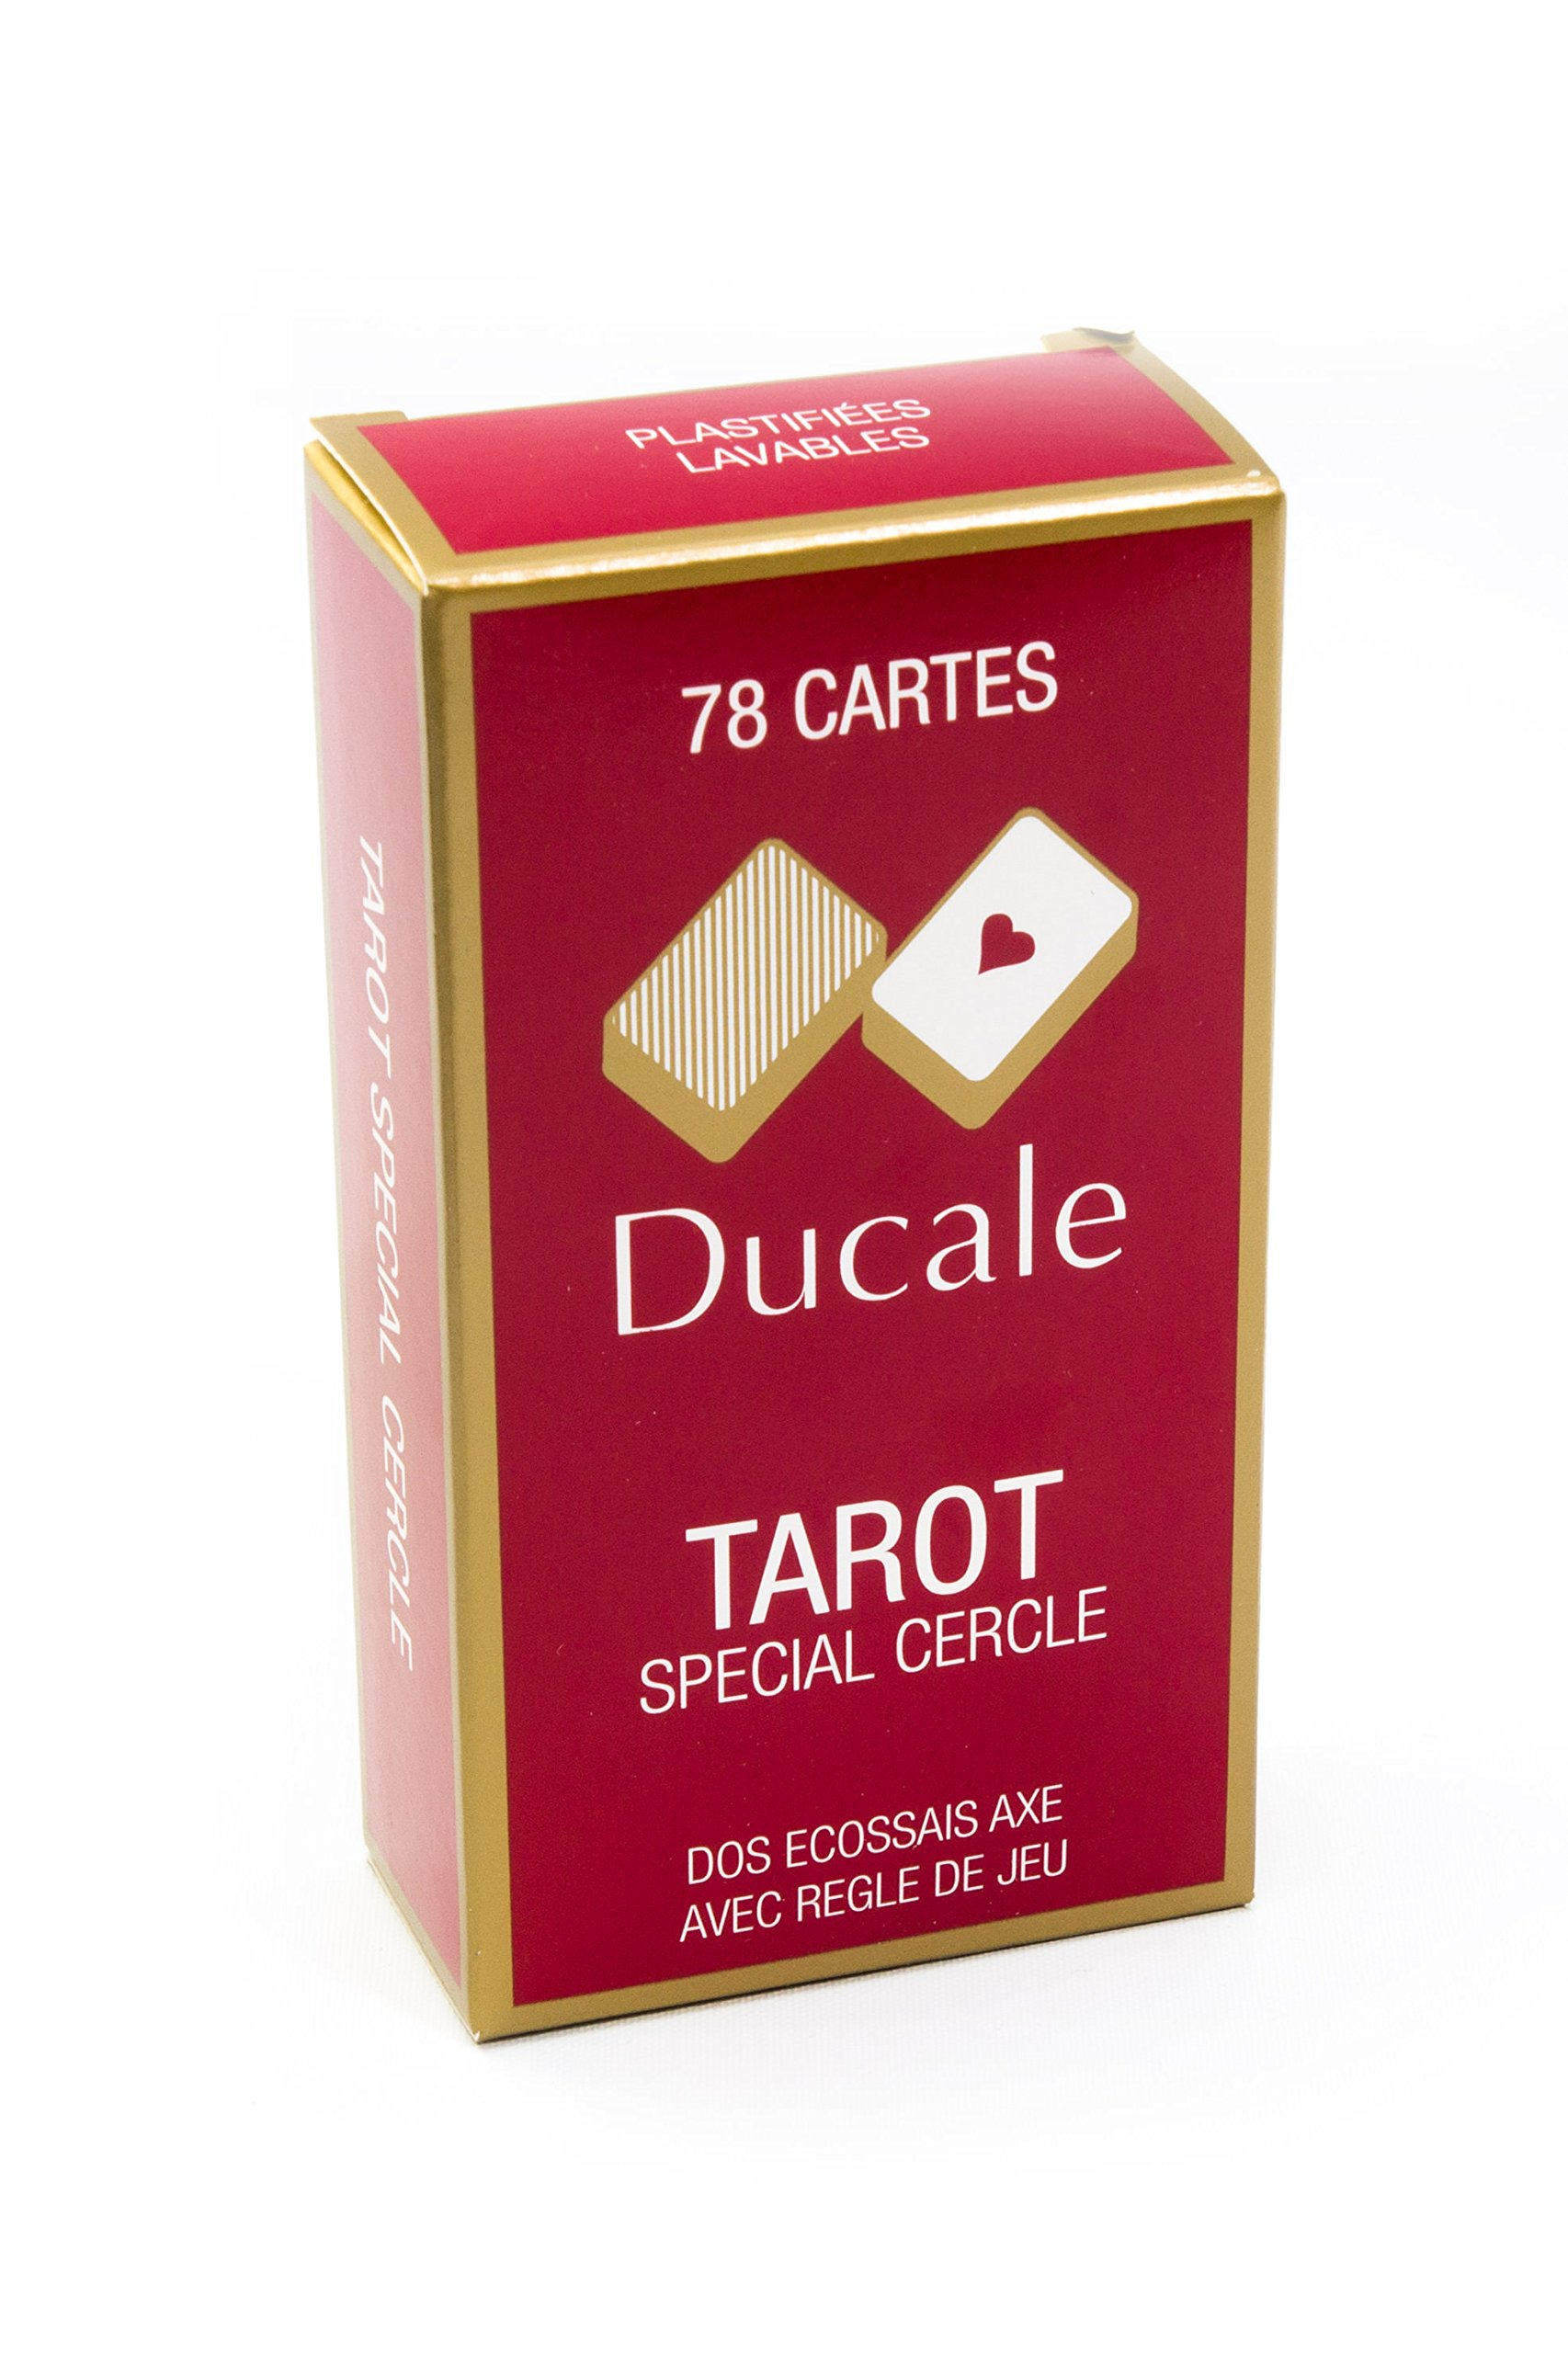 FRANCE CARTES-404680-Card Game-Tarot 78Cards Ducale by FRANCE CARTES (Image #3)